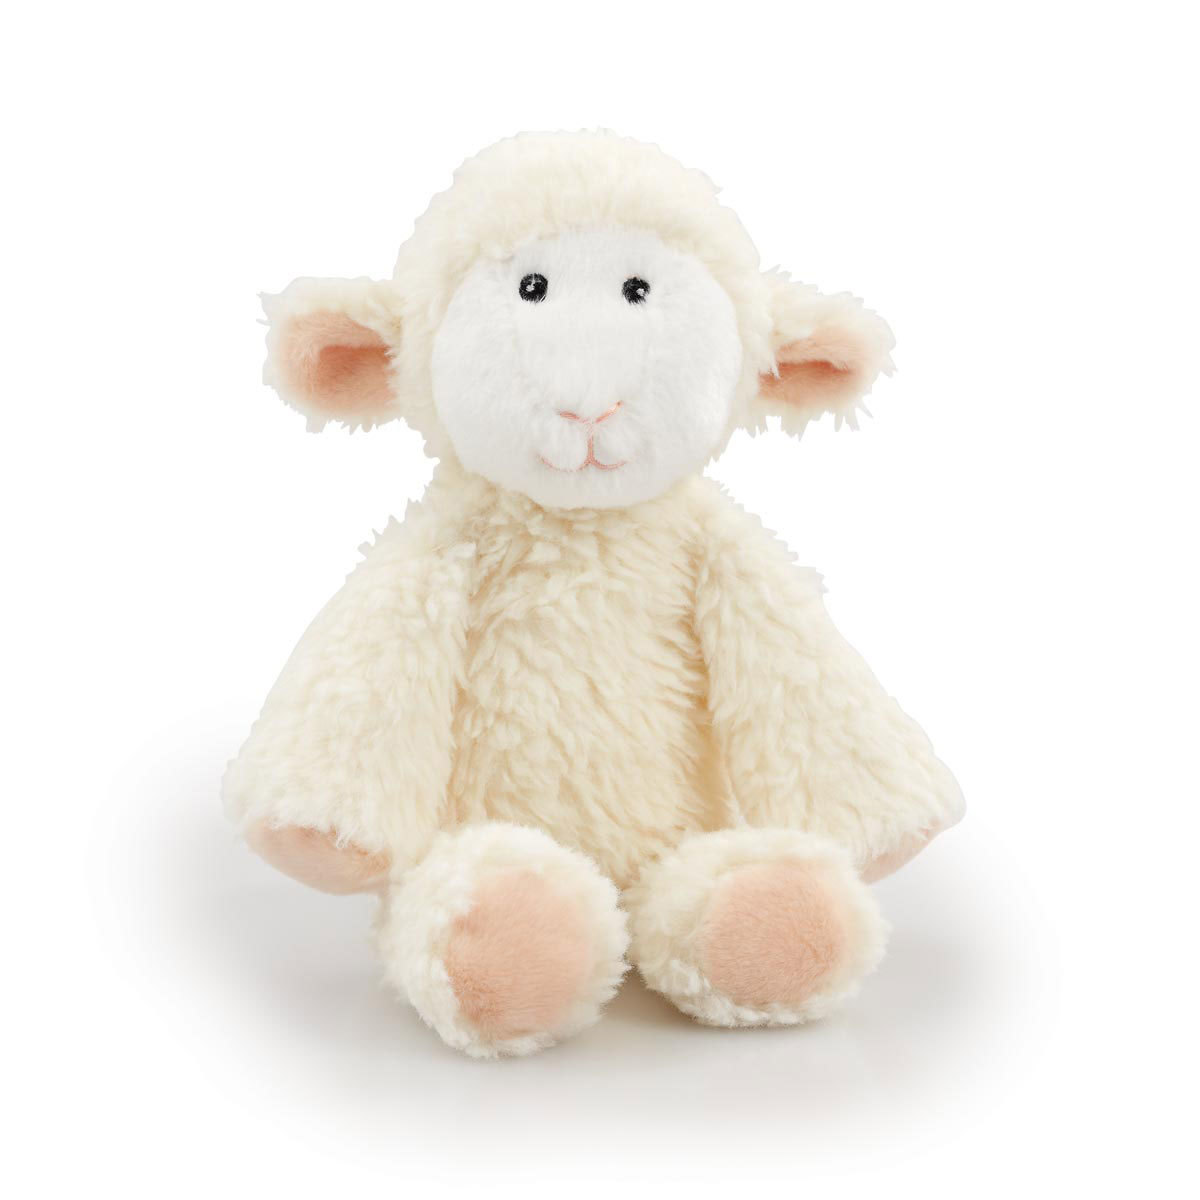 Early Learning Centre Plush Toy - Lamb from Early Learning Center